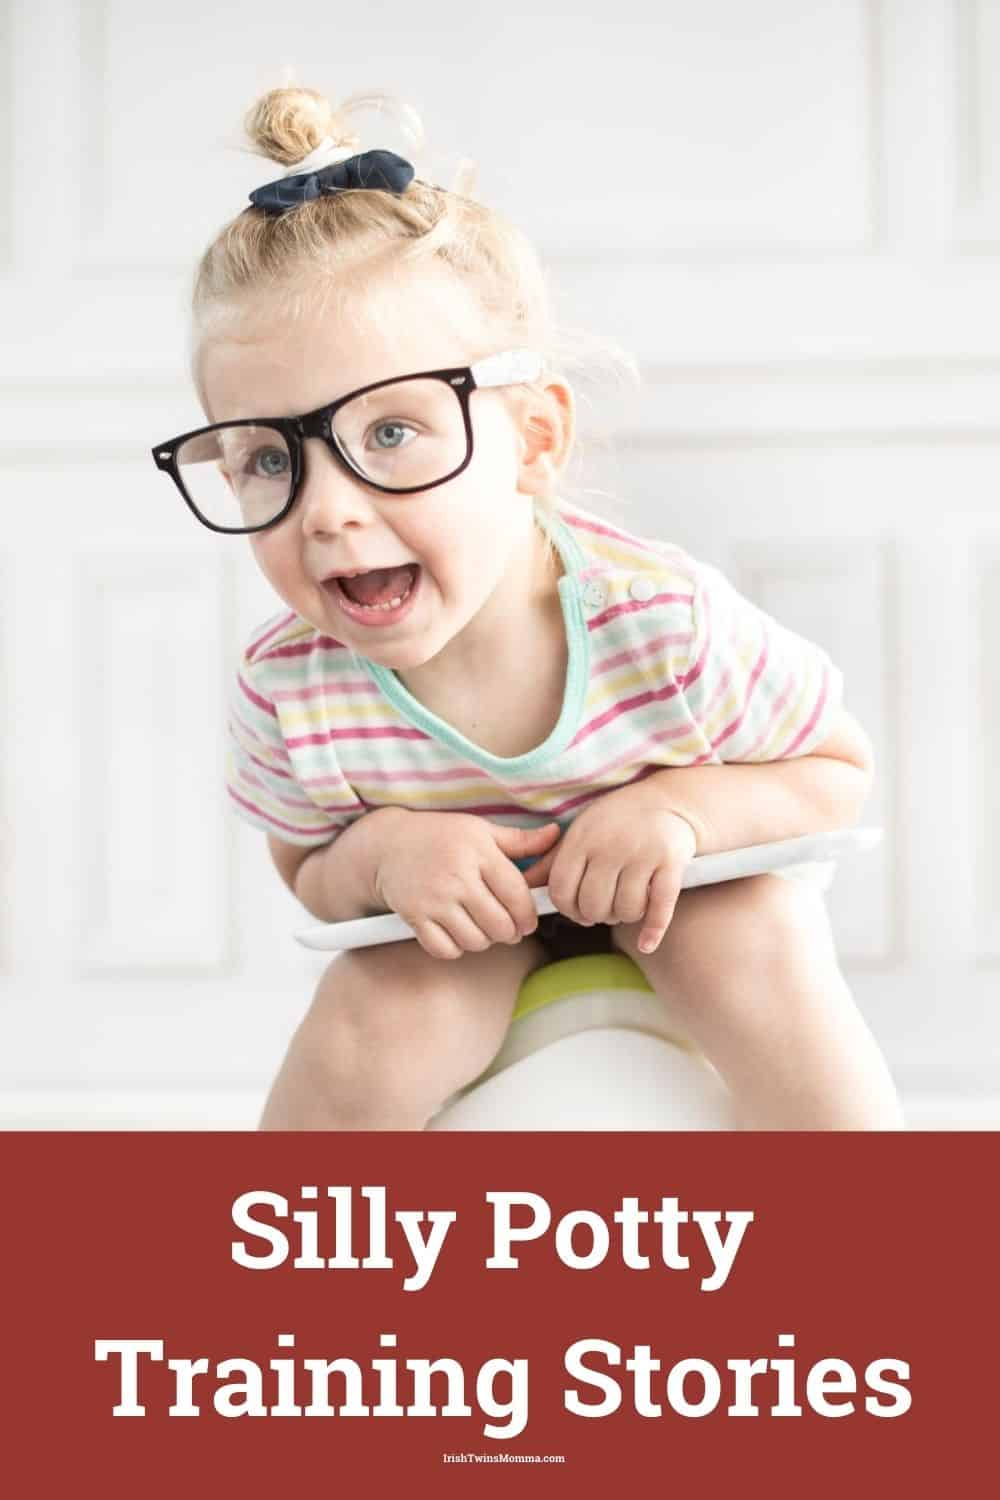 """Potty training can be a trying time for most parents, and plenty of frustrating and funny moments can happen to make good anecdotes to share with friends and family. I am sharing my hilarious potty training memories and share them with you. From singing songs about poop to leaving a """"surprise"""" behind a curtain to falling feet-first into the toilet, read on for adorable, groan-inducing, and laugh-out-loud potty training stories -- and then share your own! via @irishtwinsmom11"""